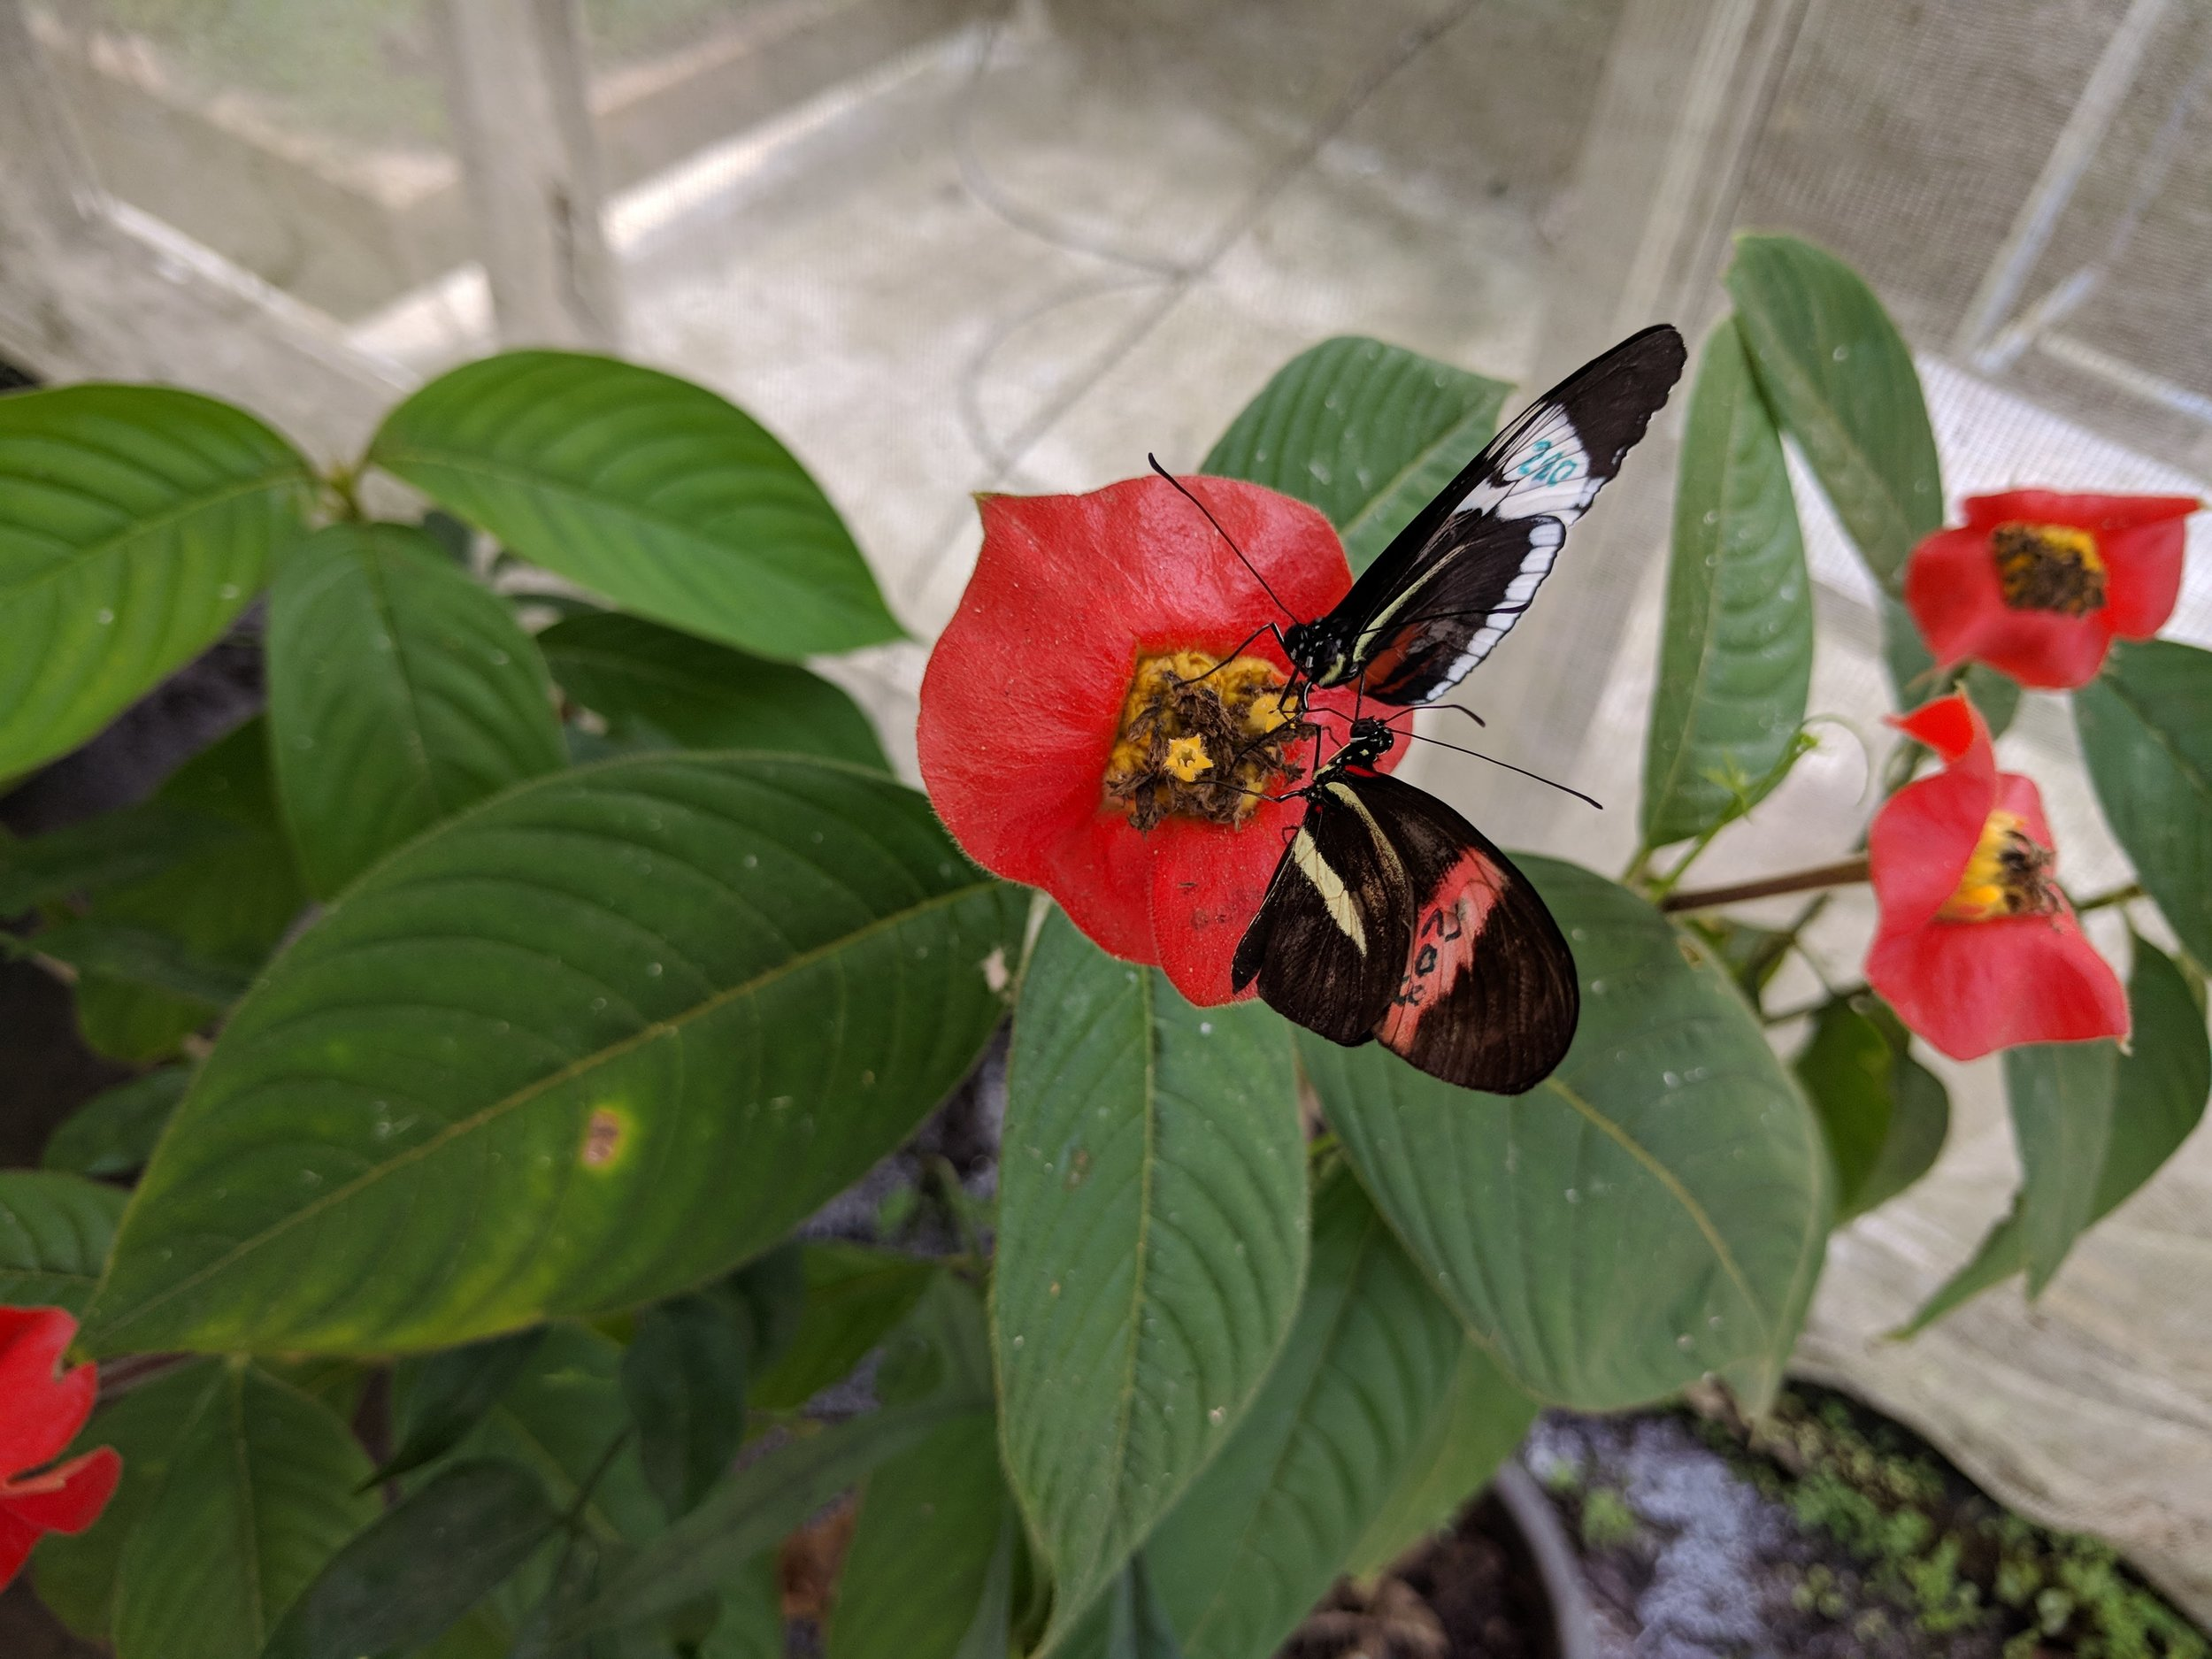 Heliconius melpomene rosina  (red and yellow) and  H. cydno chioneus  (black and white) feeding from the same plant.